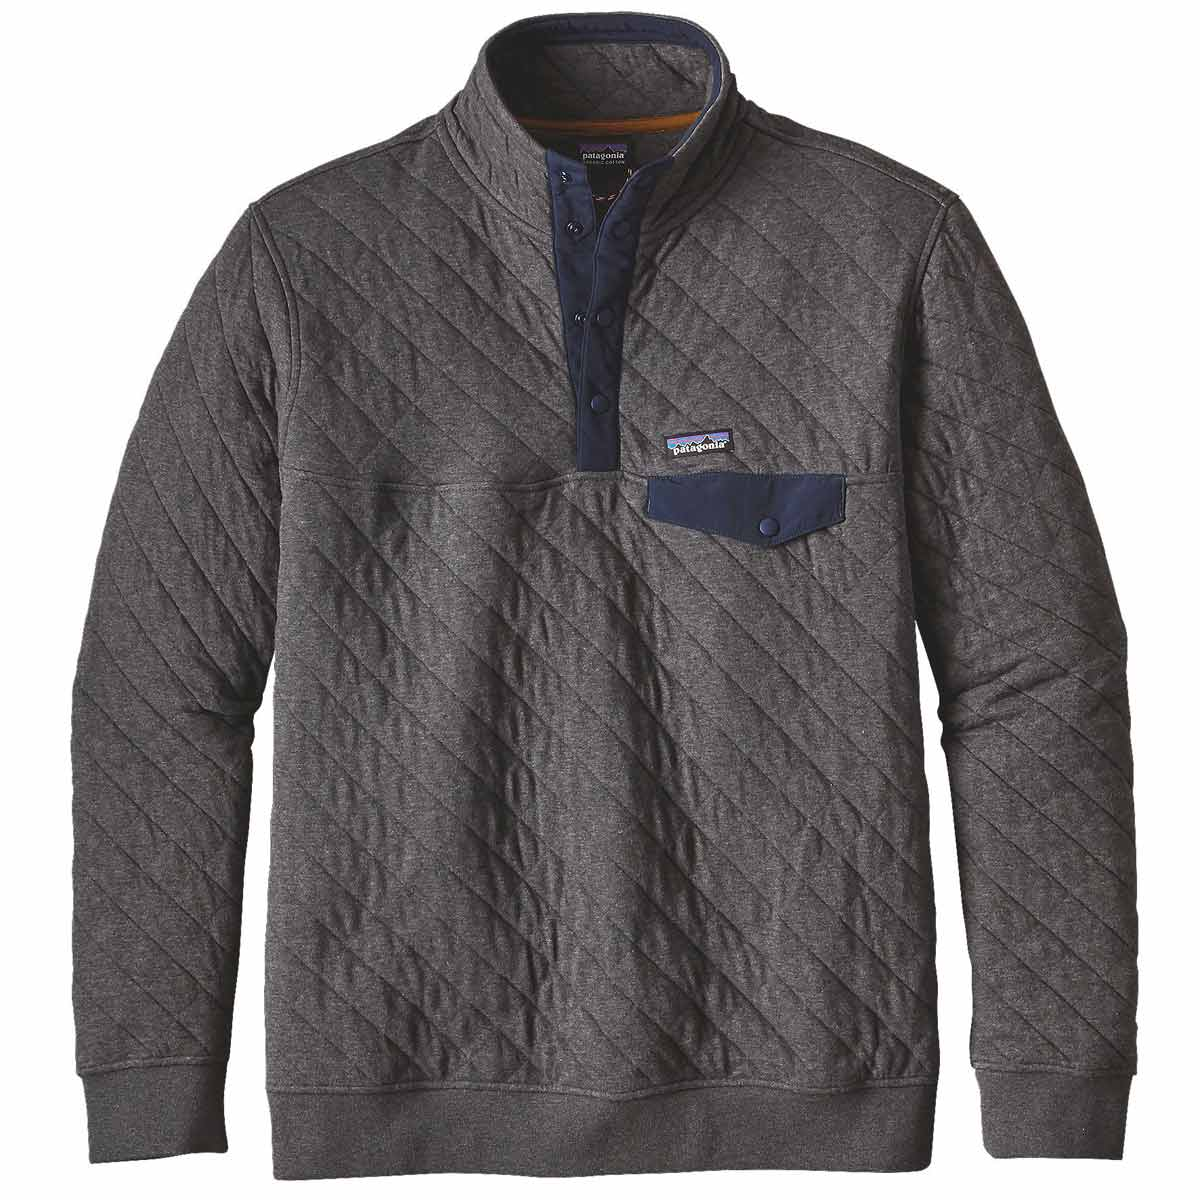 Patagonia Men S Cotton Quilt Snap T Pullover Jacket On